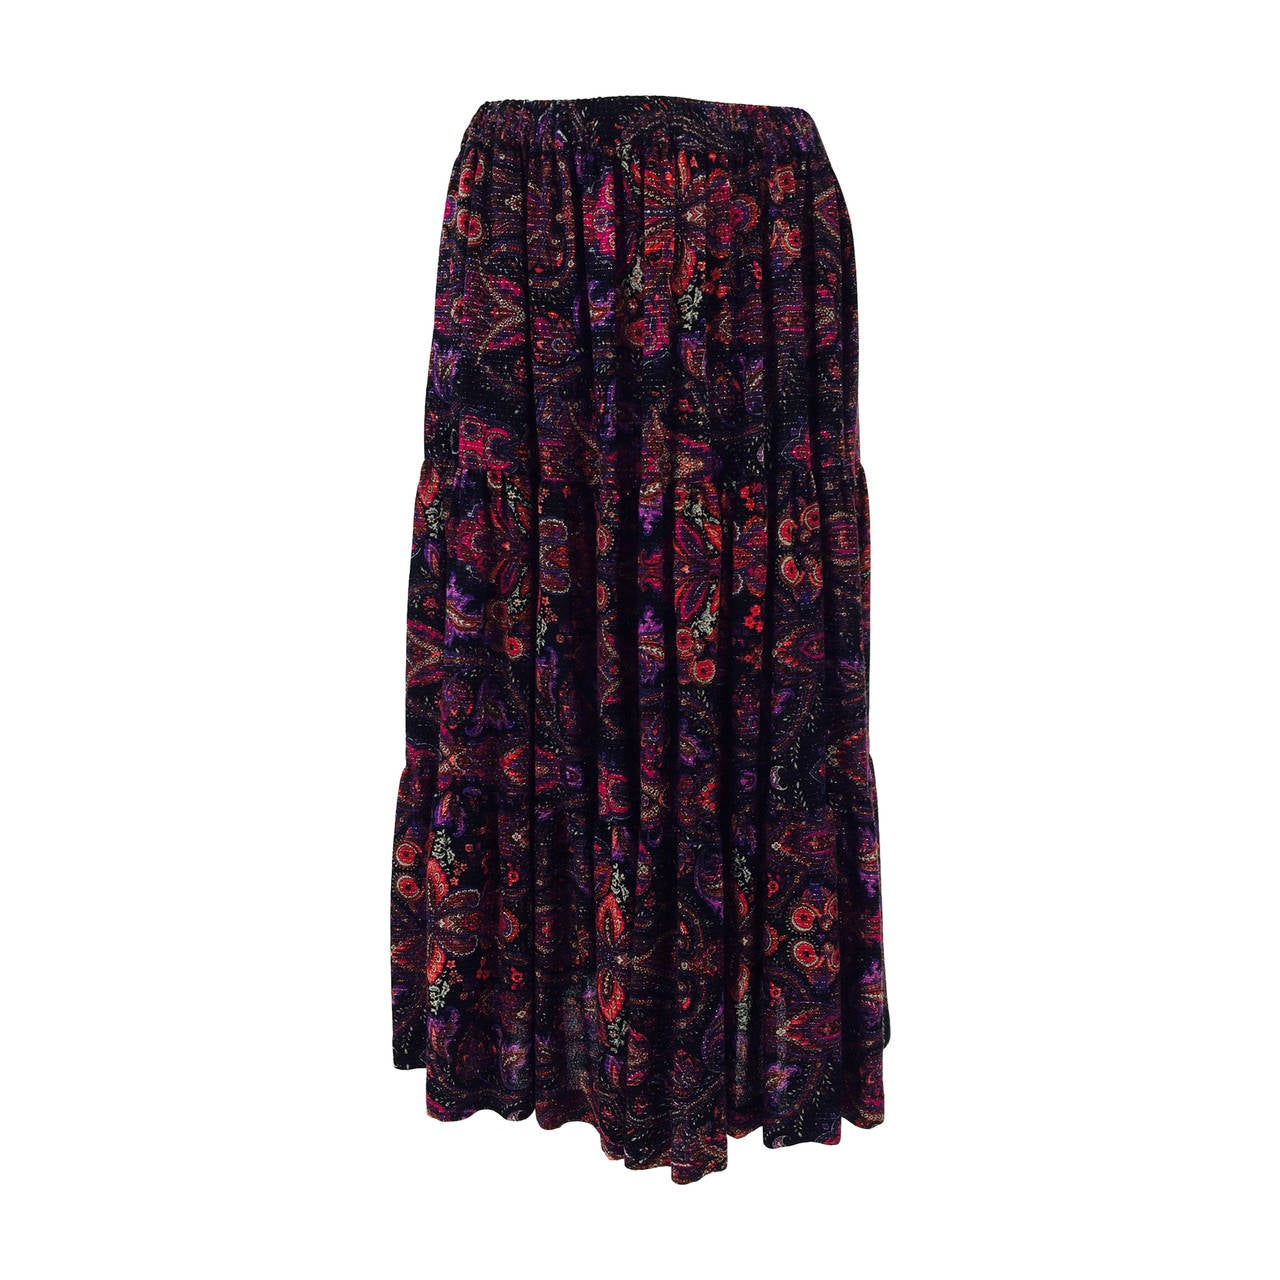 Yves St Laurent YSL Rive Gauche metallic paisley tiered gypsy skirt 1970s For Sale